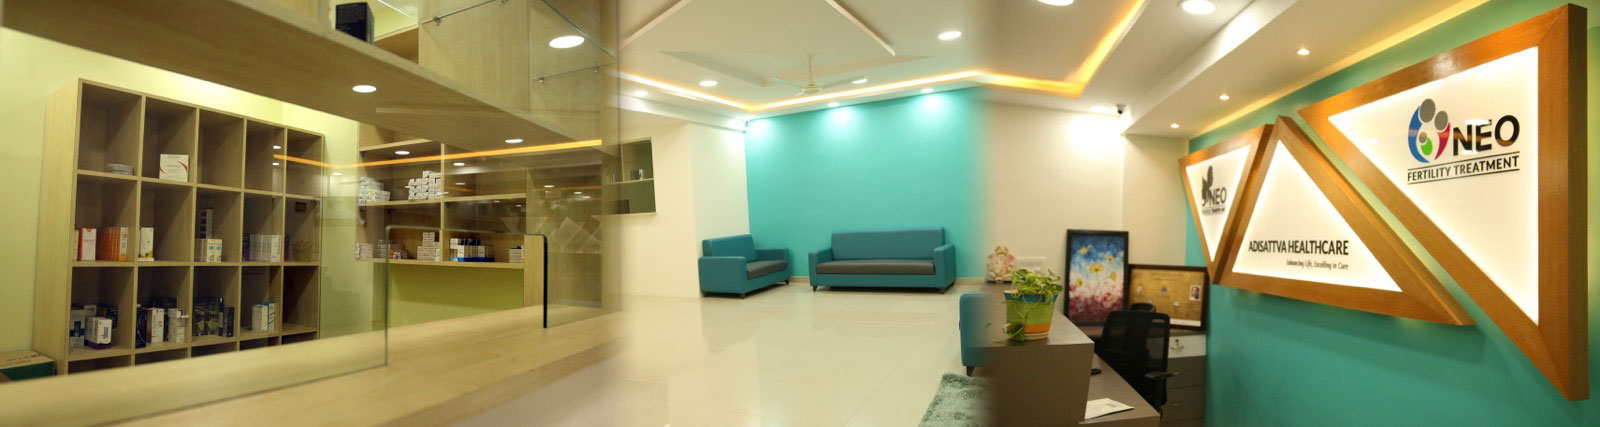 IVF Treatment Hospital